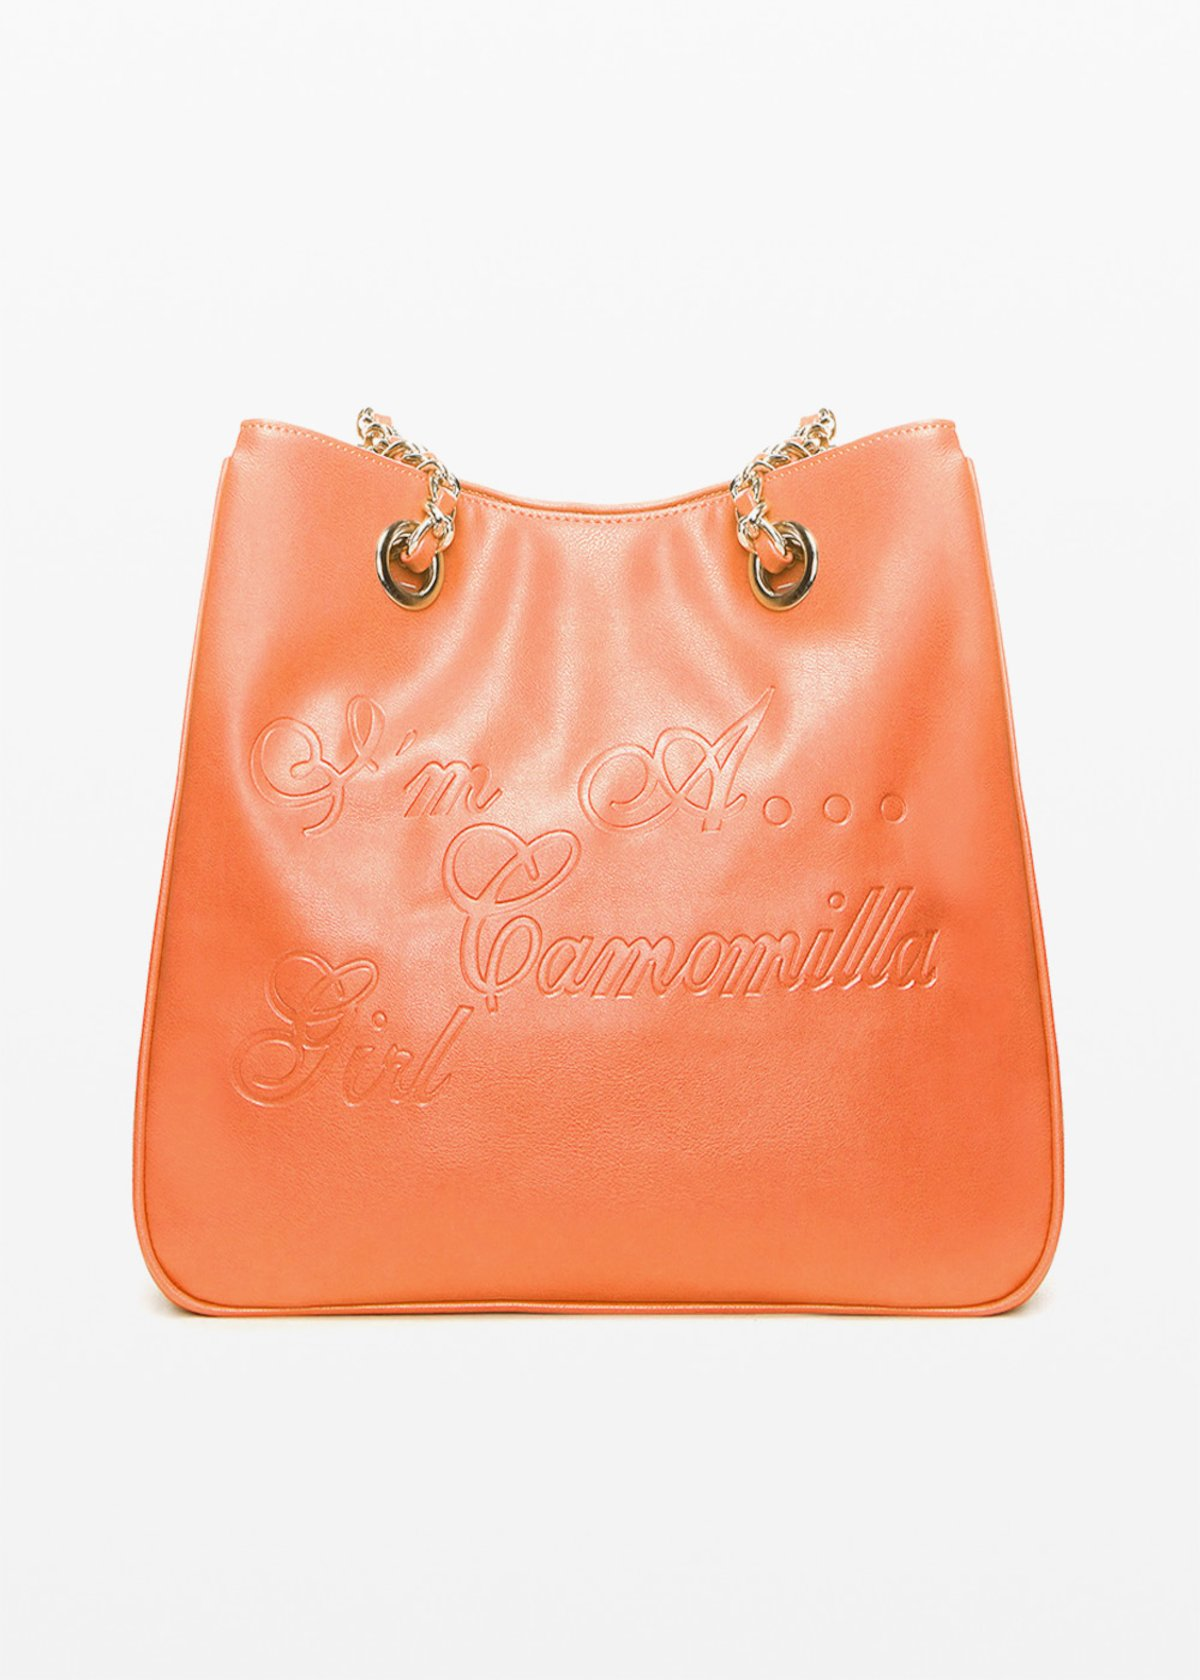 Shopping bag Minicamog in ecopelle con logo embossed - Mandarino - Donna